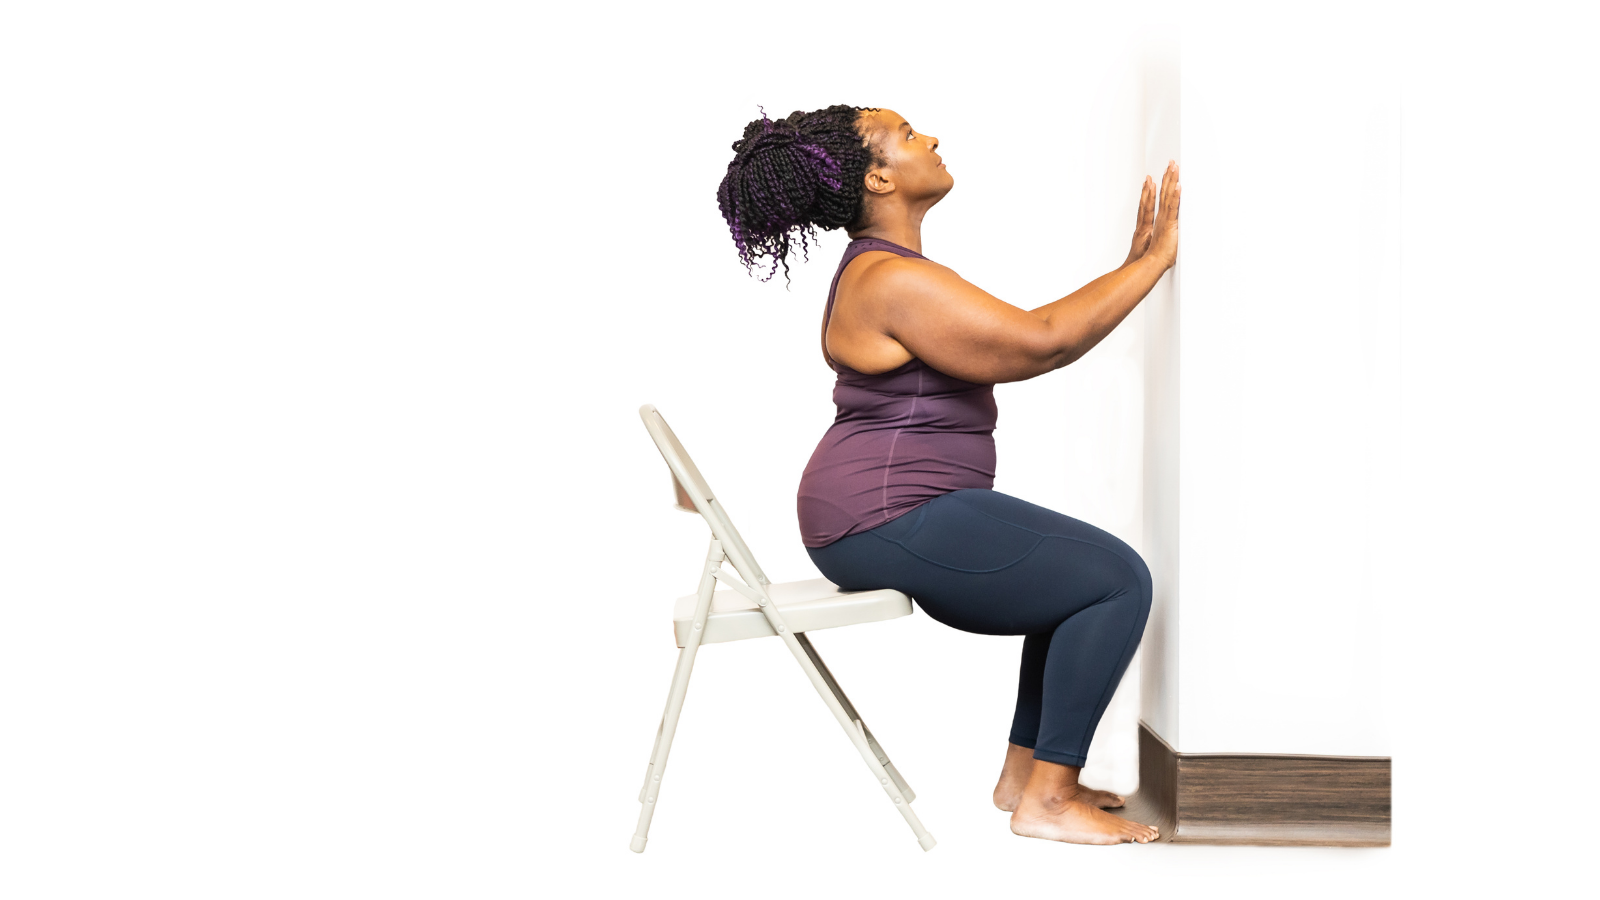 Yoga Student practicing Cobra Pose (Bhujangasana) with chair and at the wall to assist her